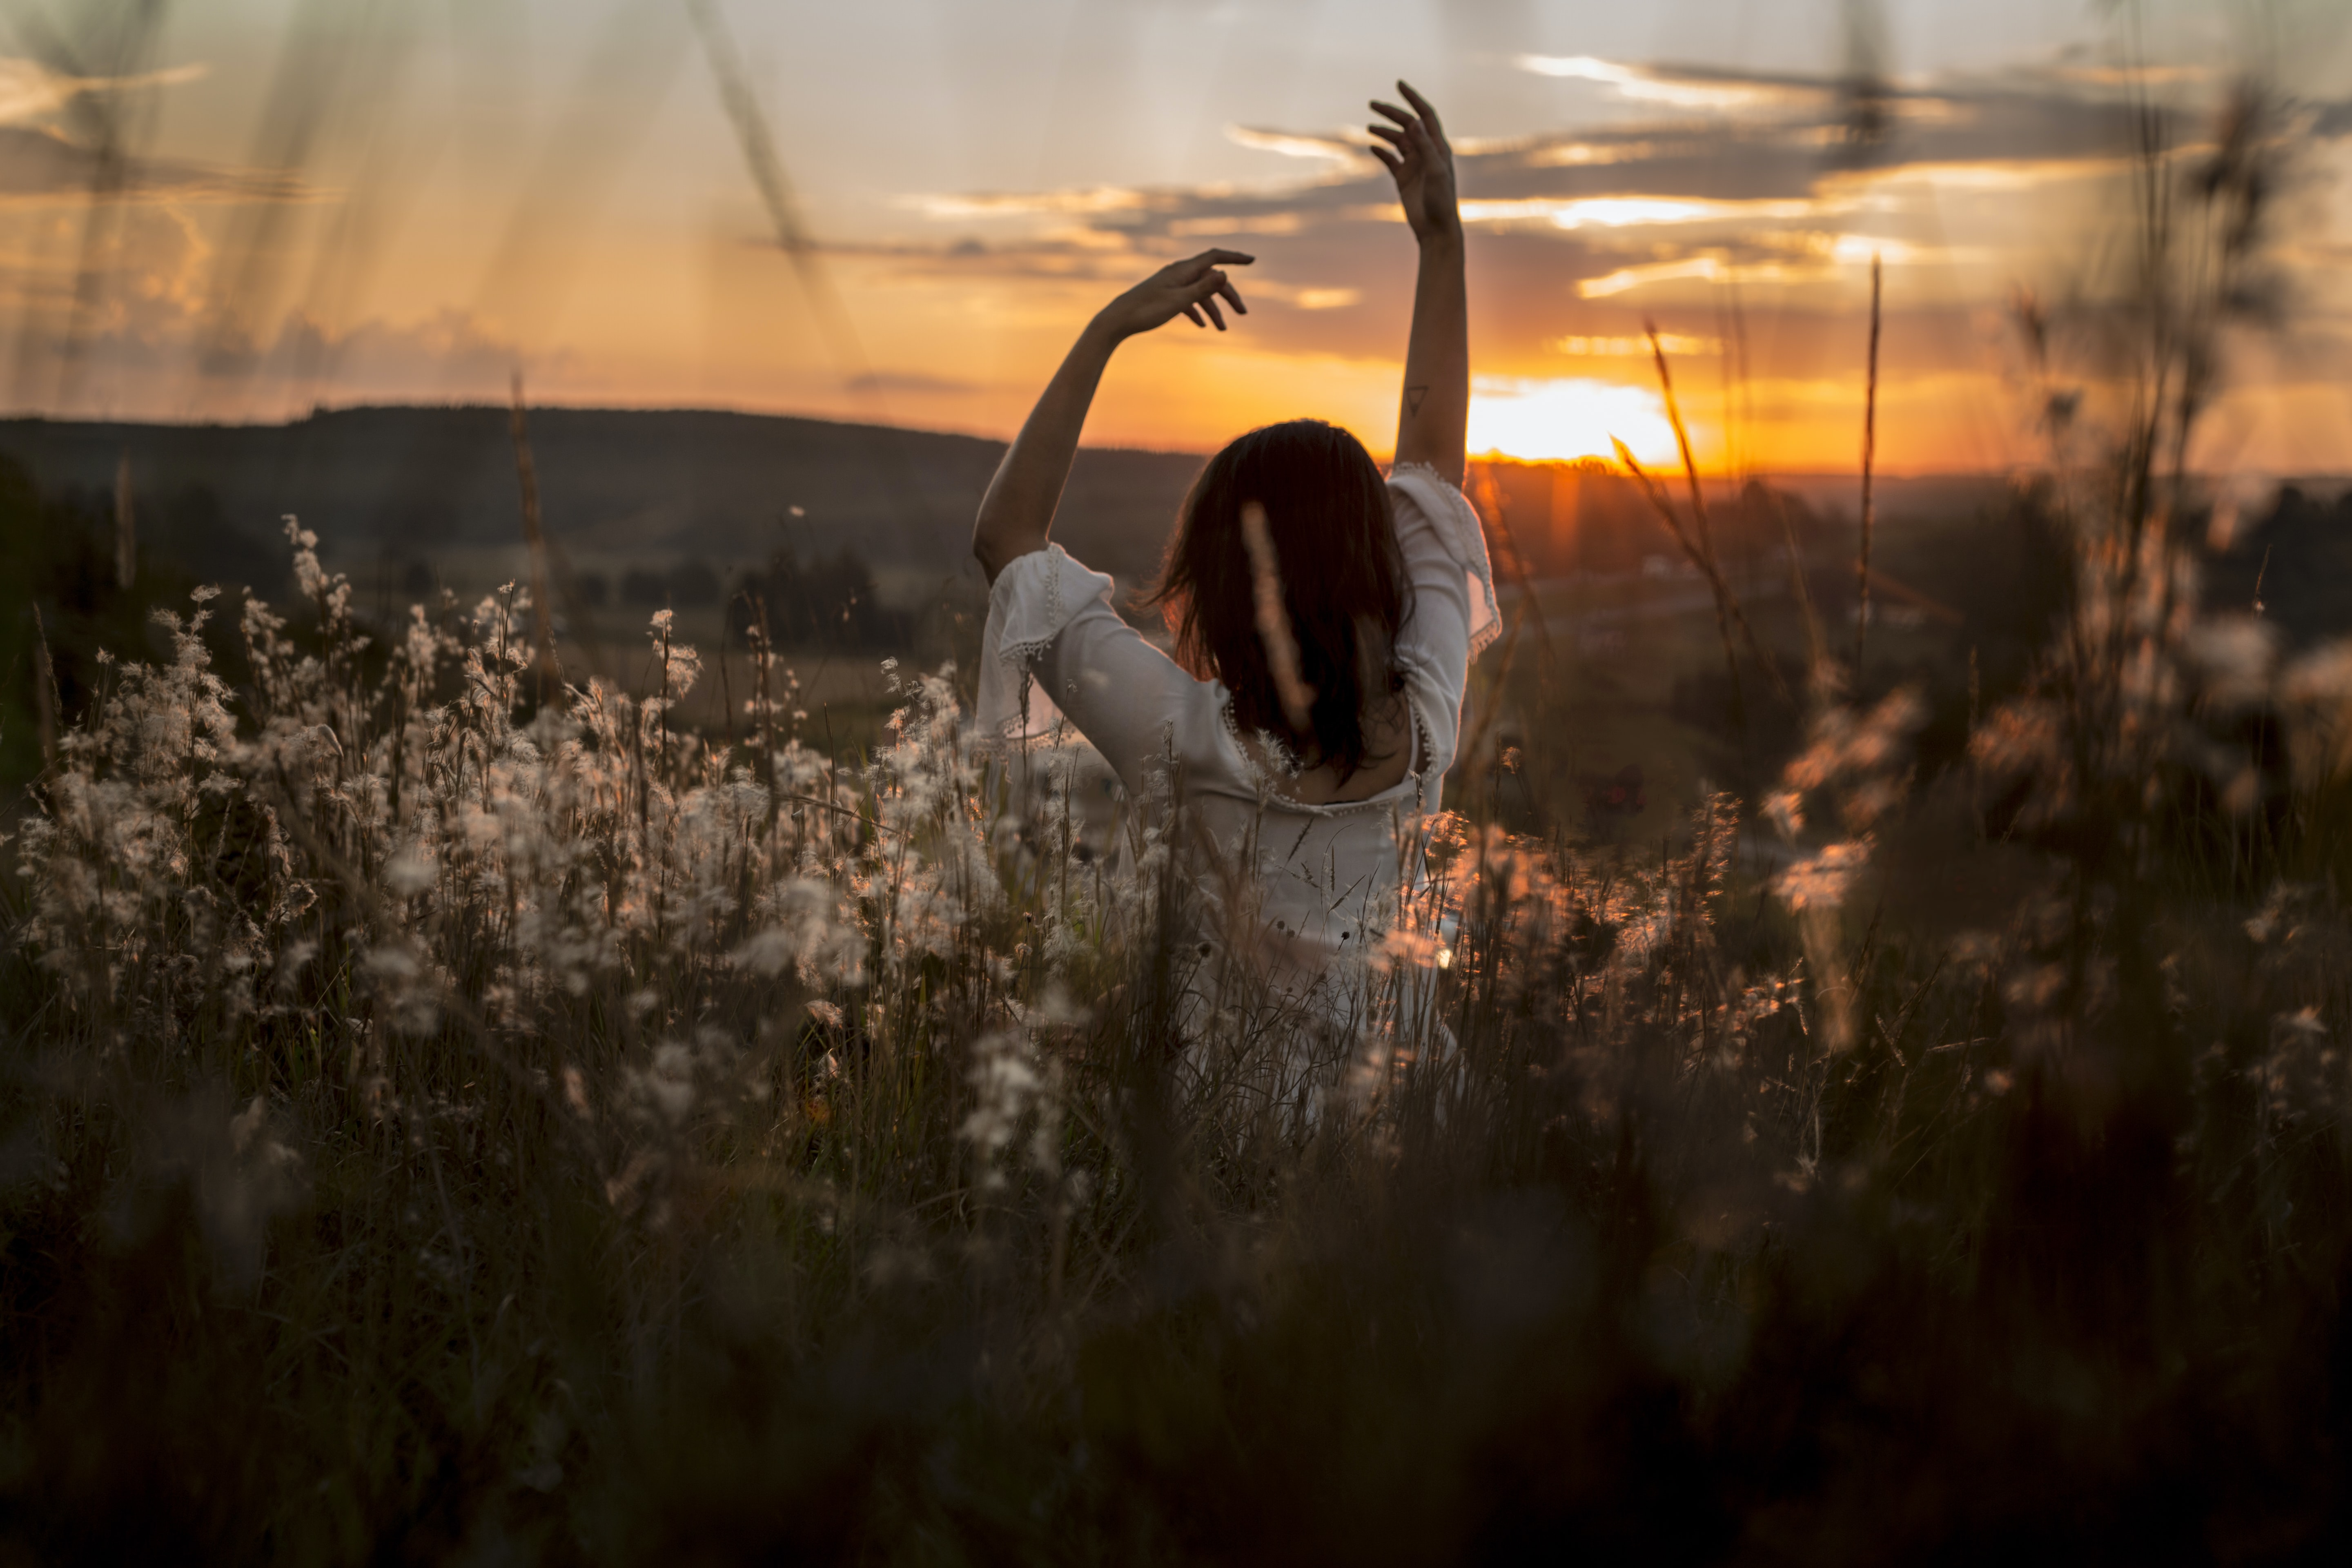 woman wearing white dress raising her two hands surrounded white petaled flowers during sunset